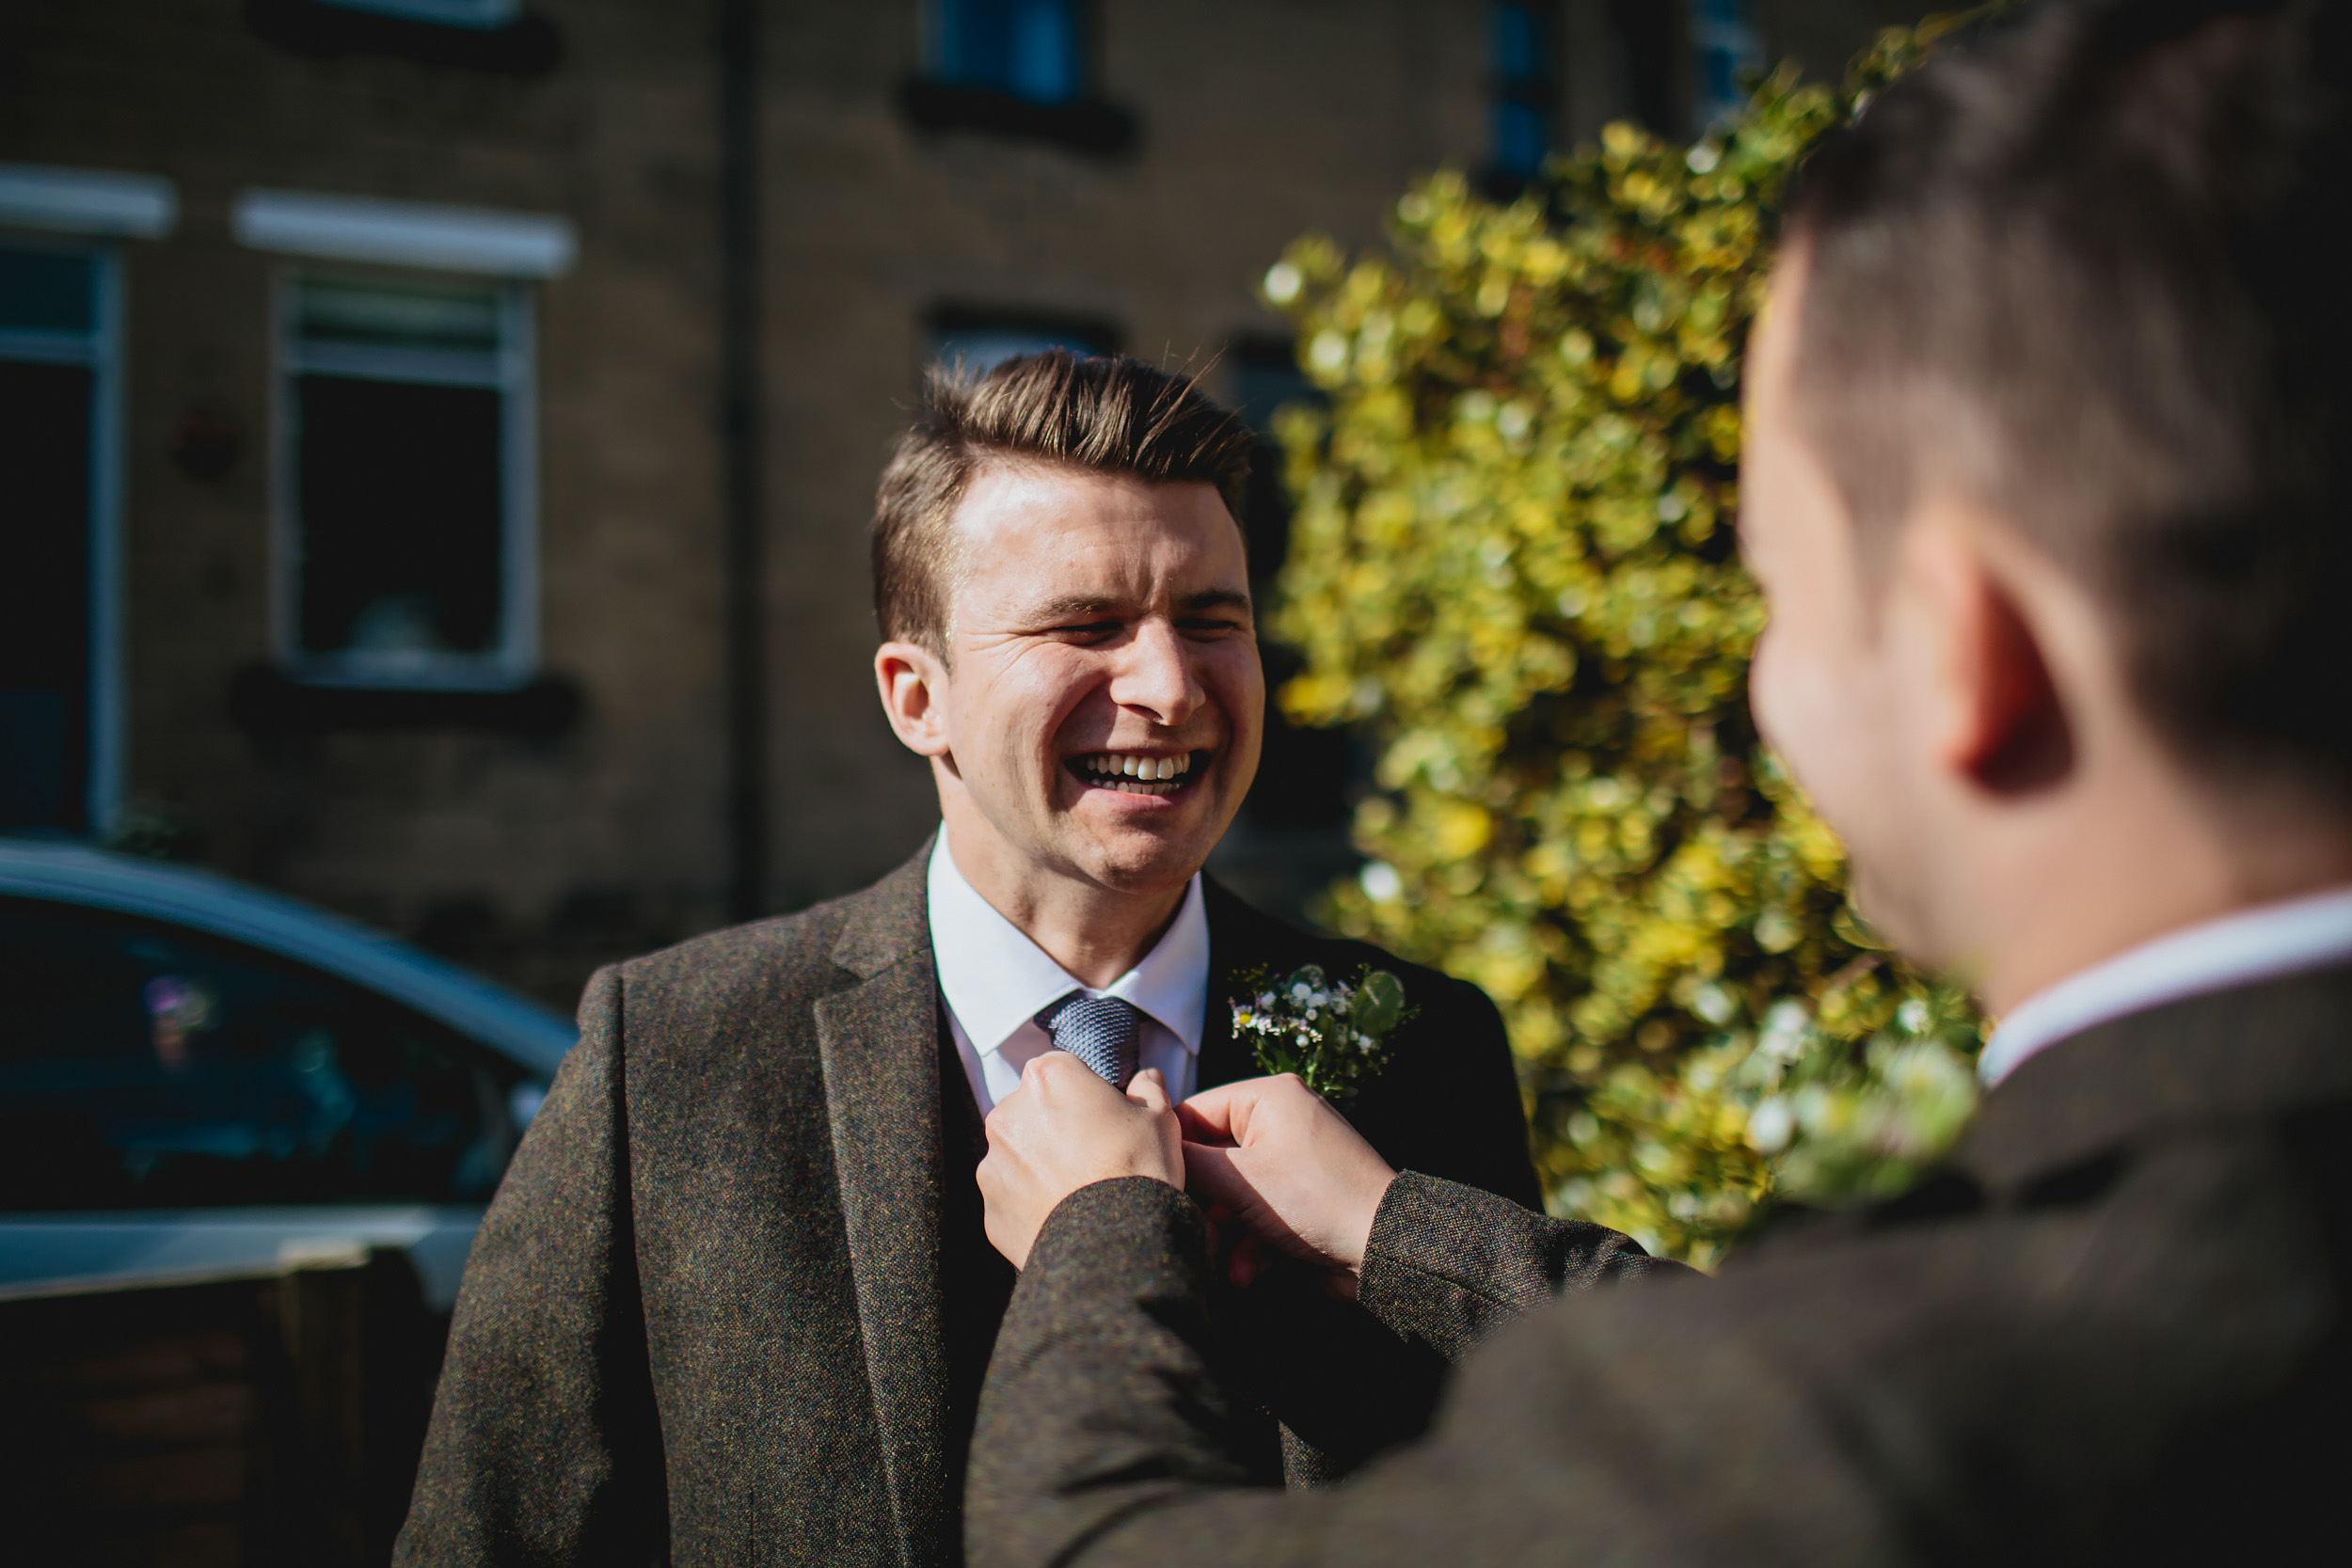 Best man helps the groom with his tie at his wedding in Yorkshire